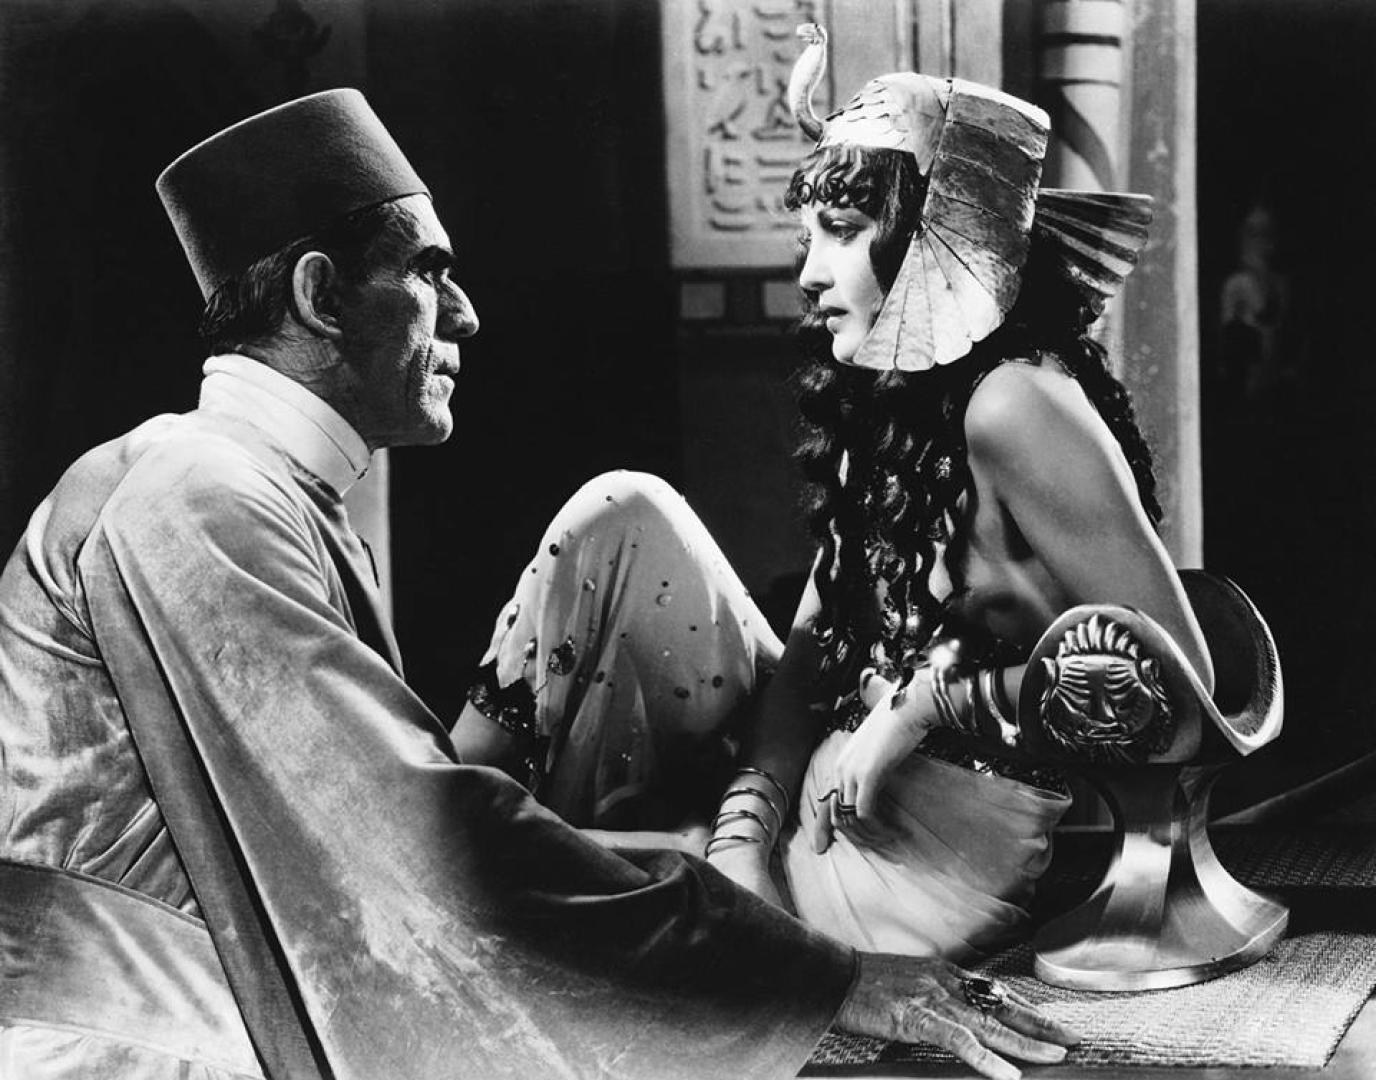 The Mummy - A múmia (1932) 1. kép